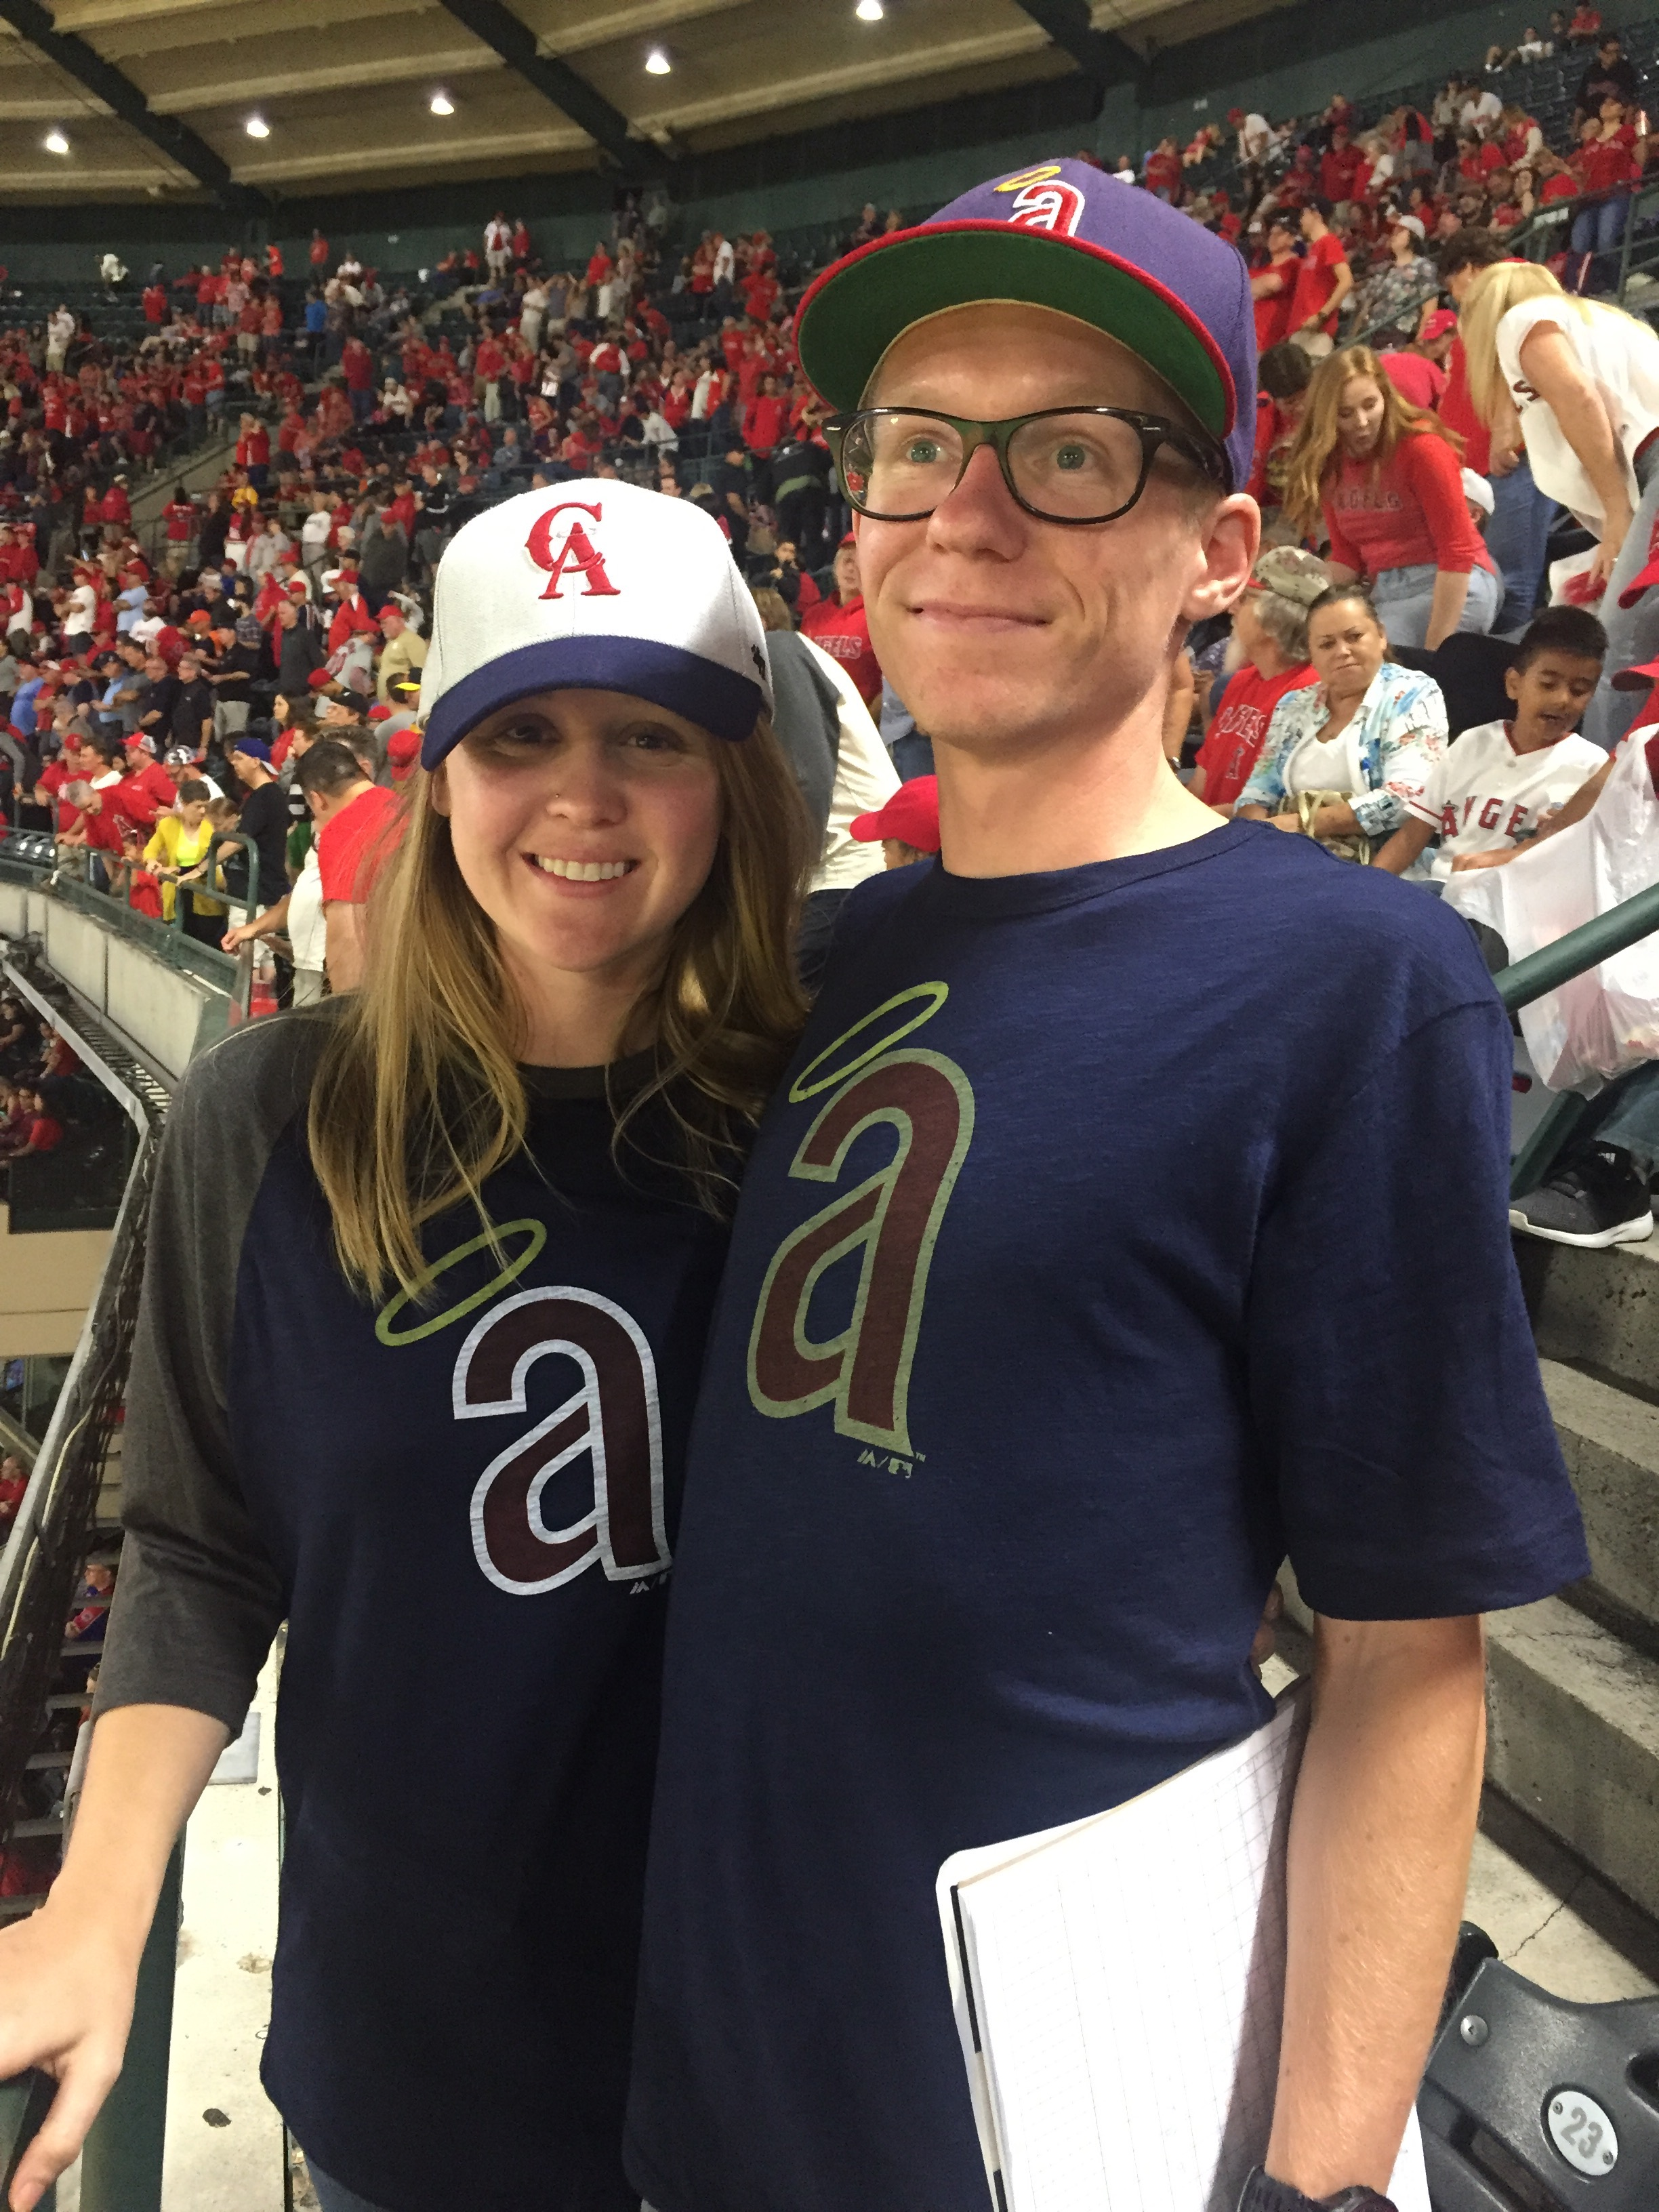 samantha and her husband, thomas, at an angels game